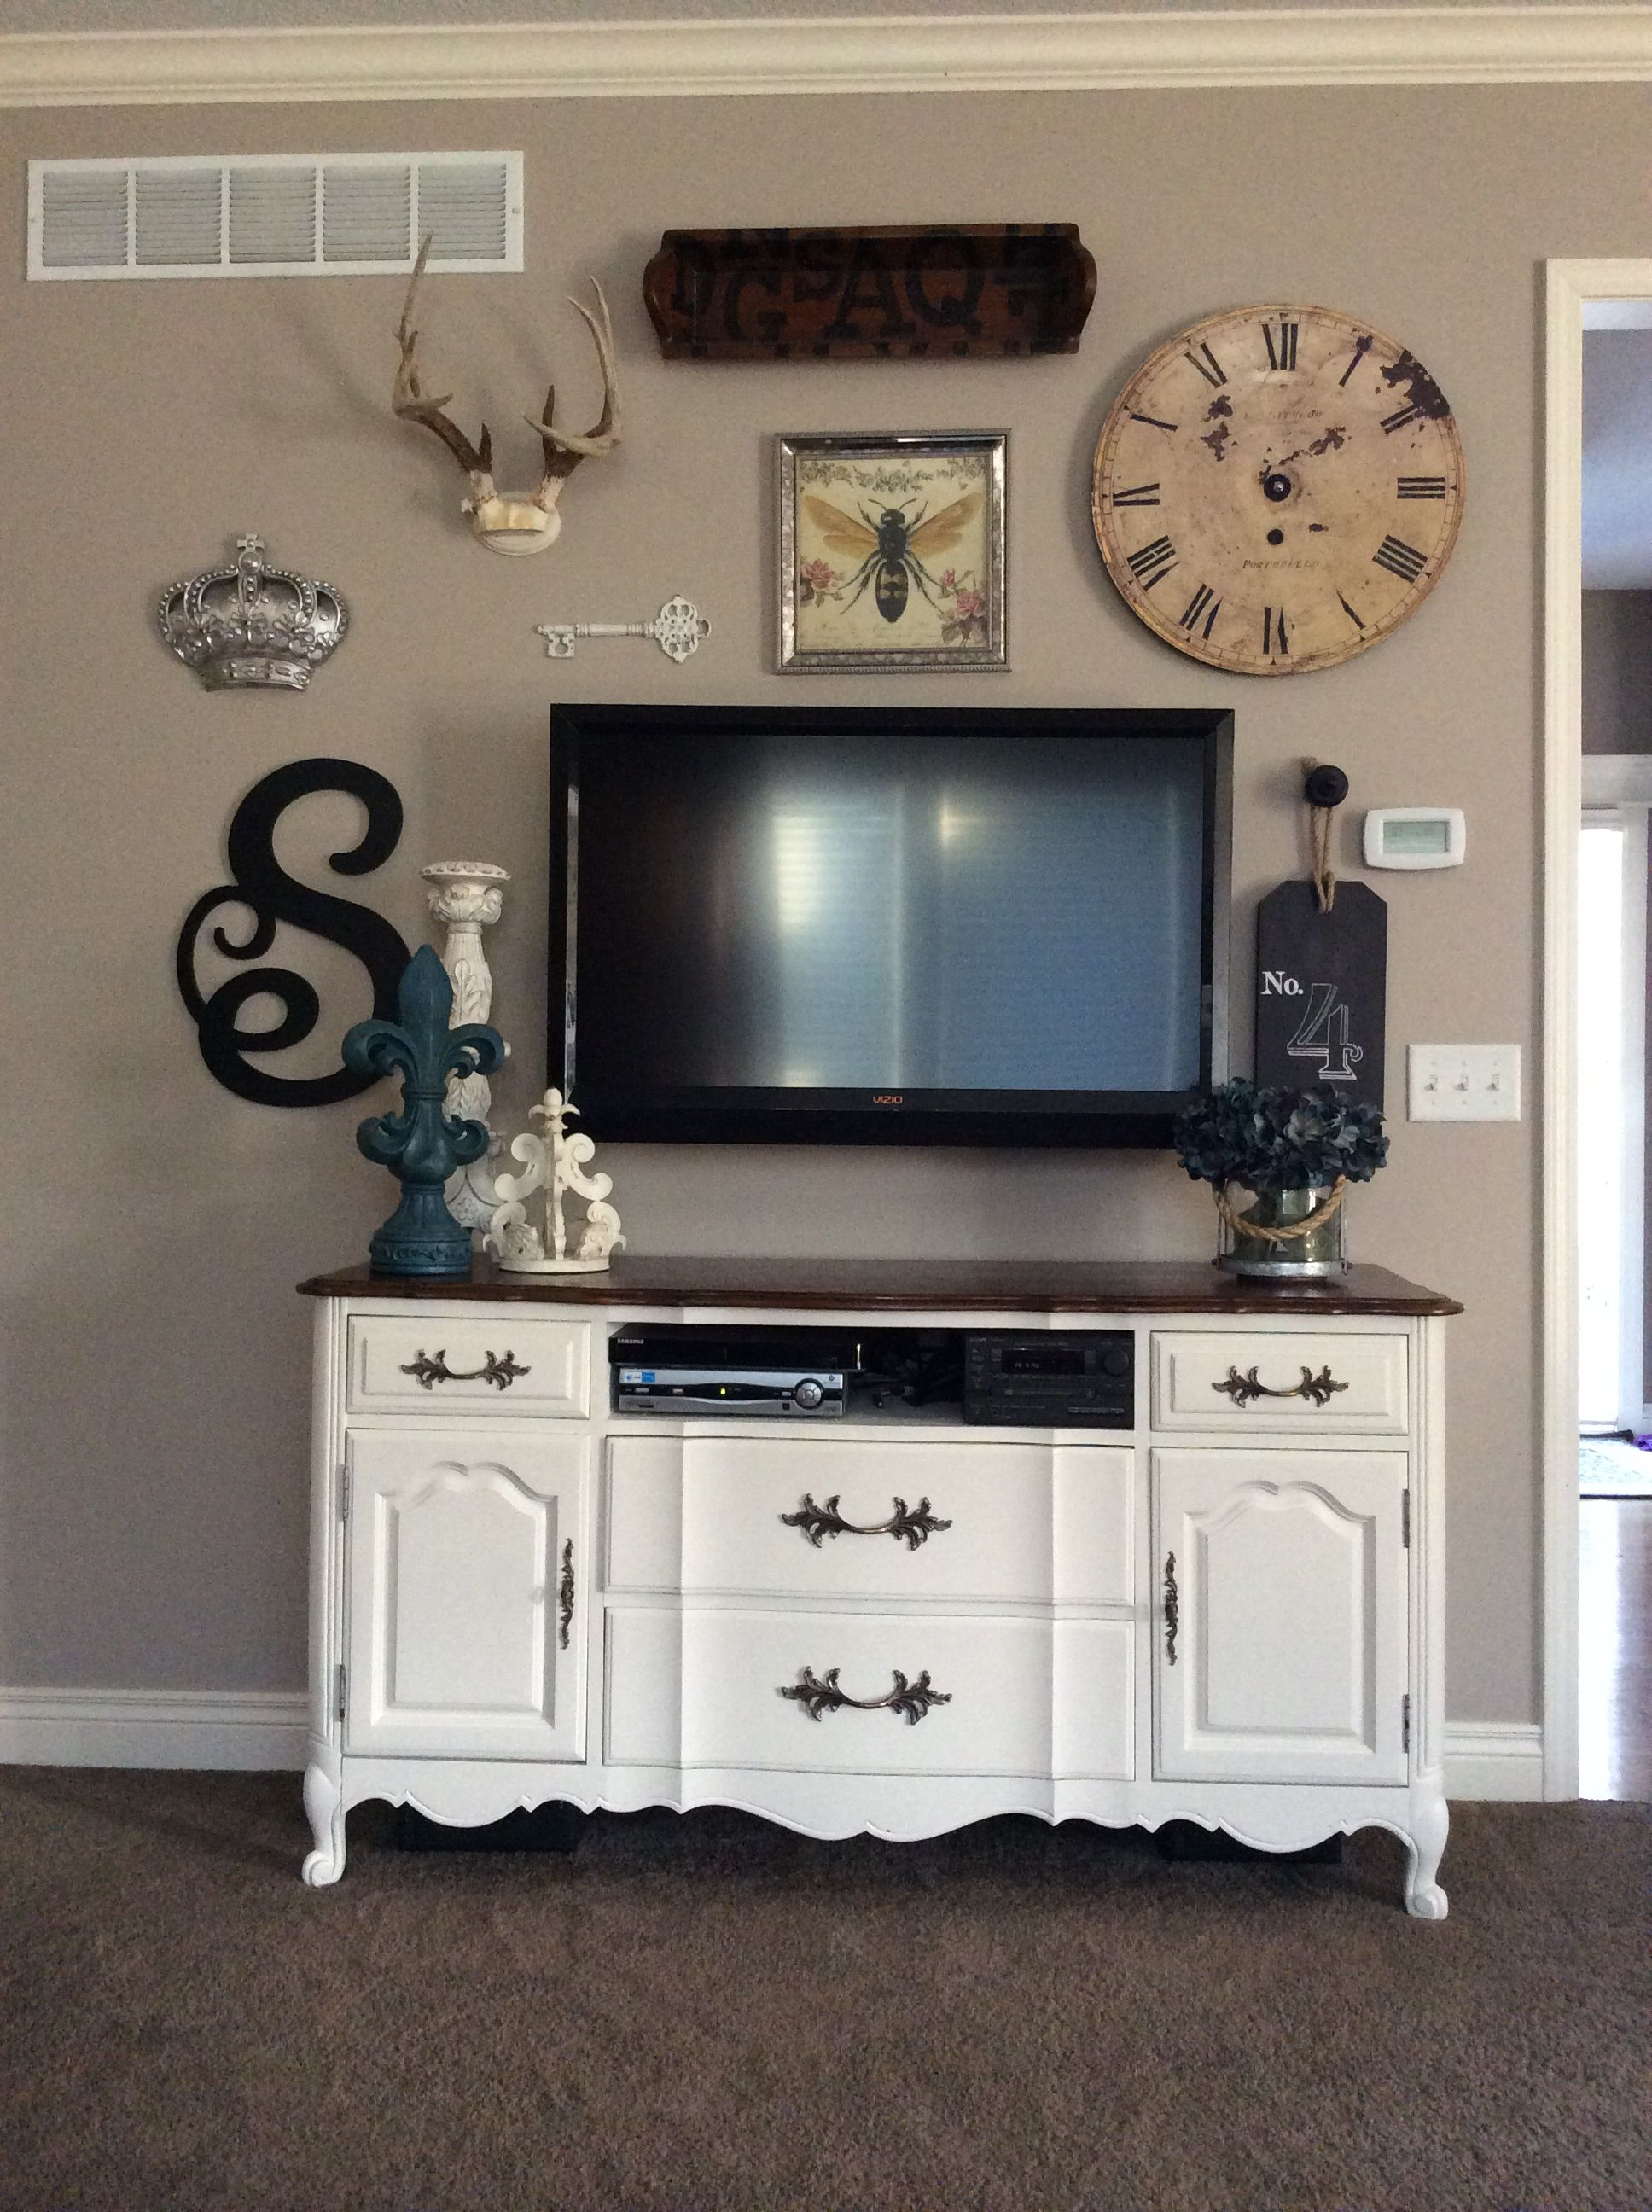 Ideas For Decorating Around A Flat Screen Tv Gallery Wall Designing Around A Flat Screen Tv Decor Antlers Crown